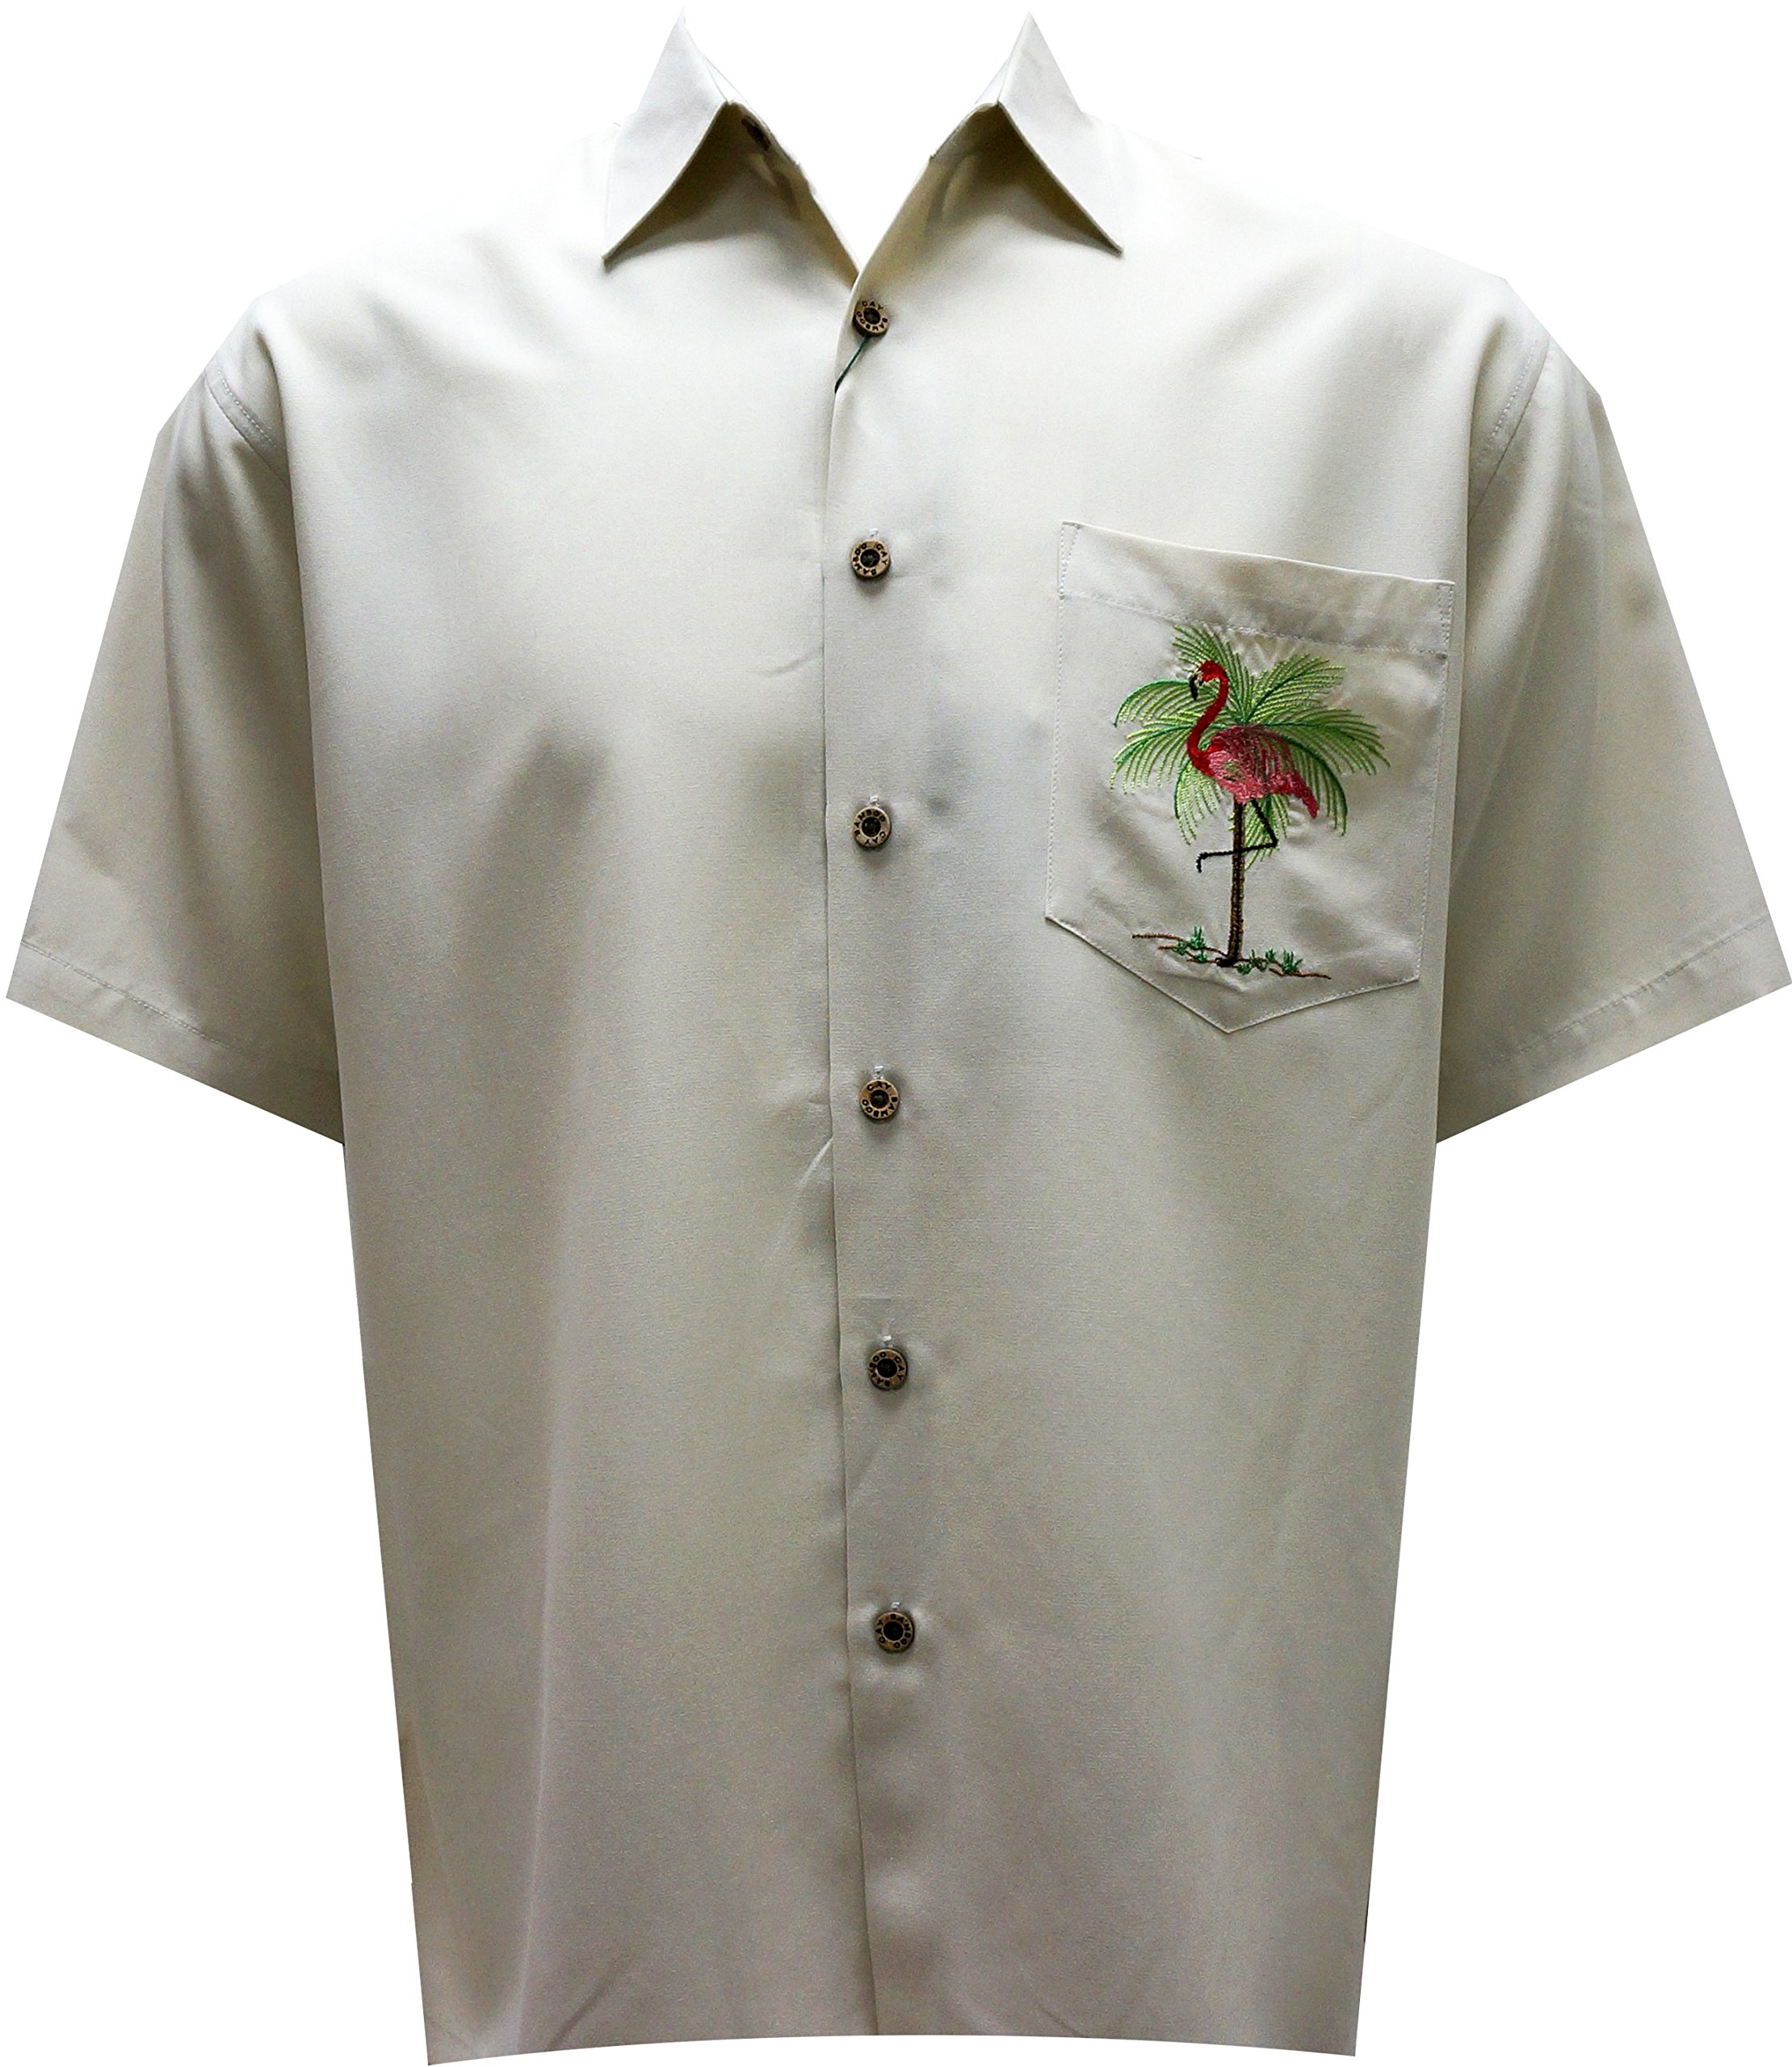 Bamboo Cay - Men's Pink Palmingo, Embroidered Tropical Style Shirt (X-Large, Cream) by Bamboo Cay (Image #1)